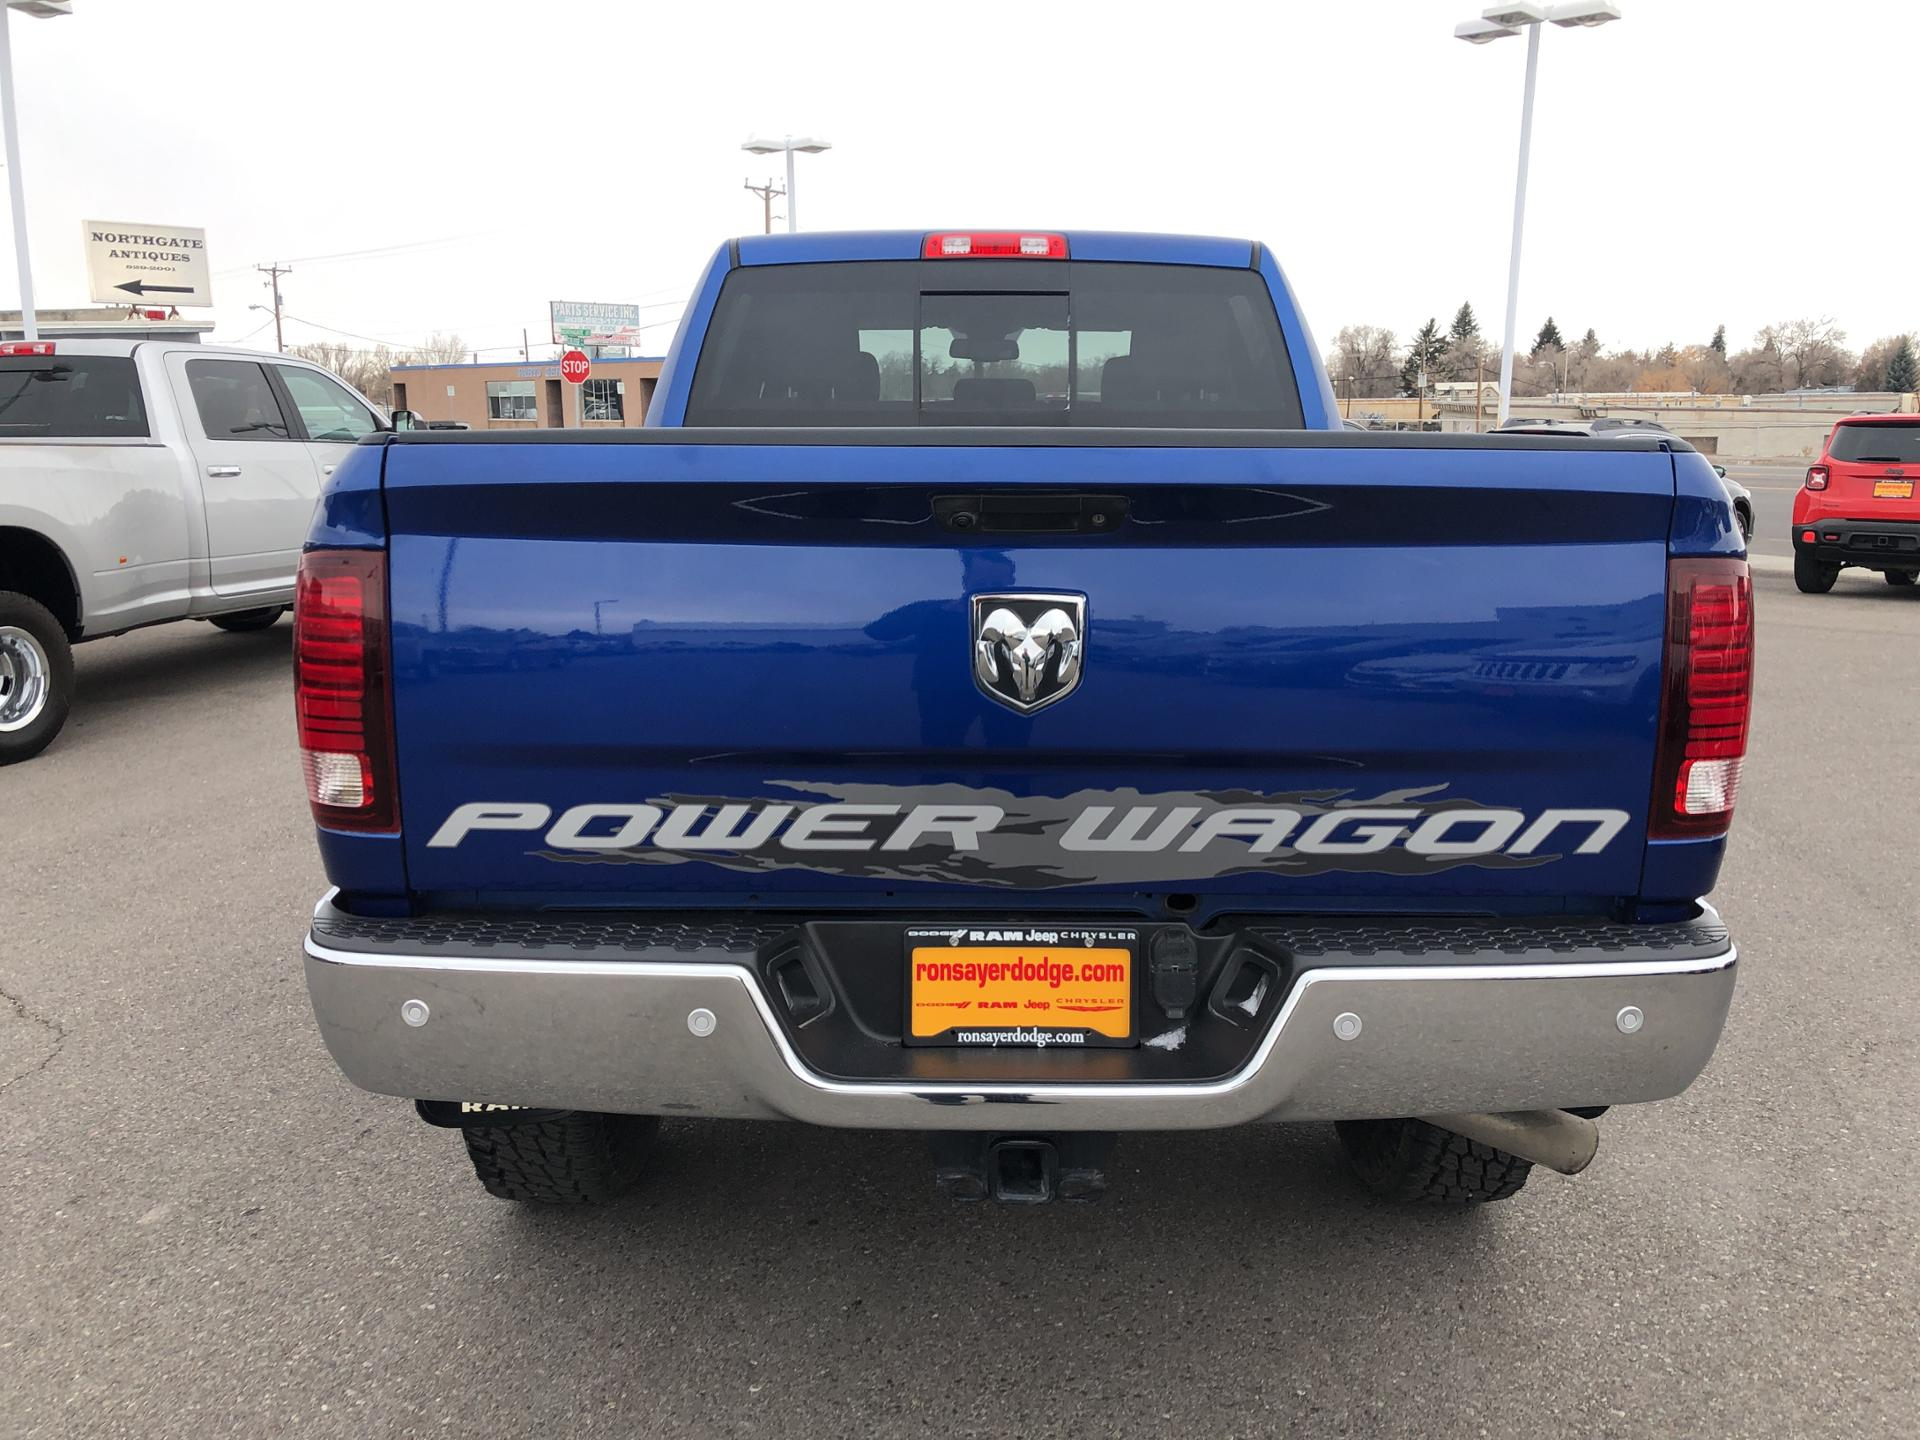 Certified Pre-Owned 2016 Ram 2500 Power Wagon